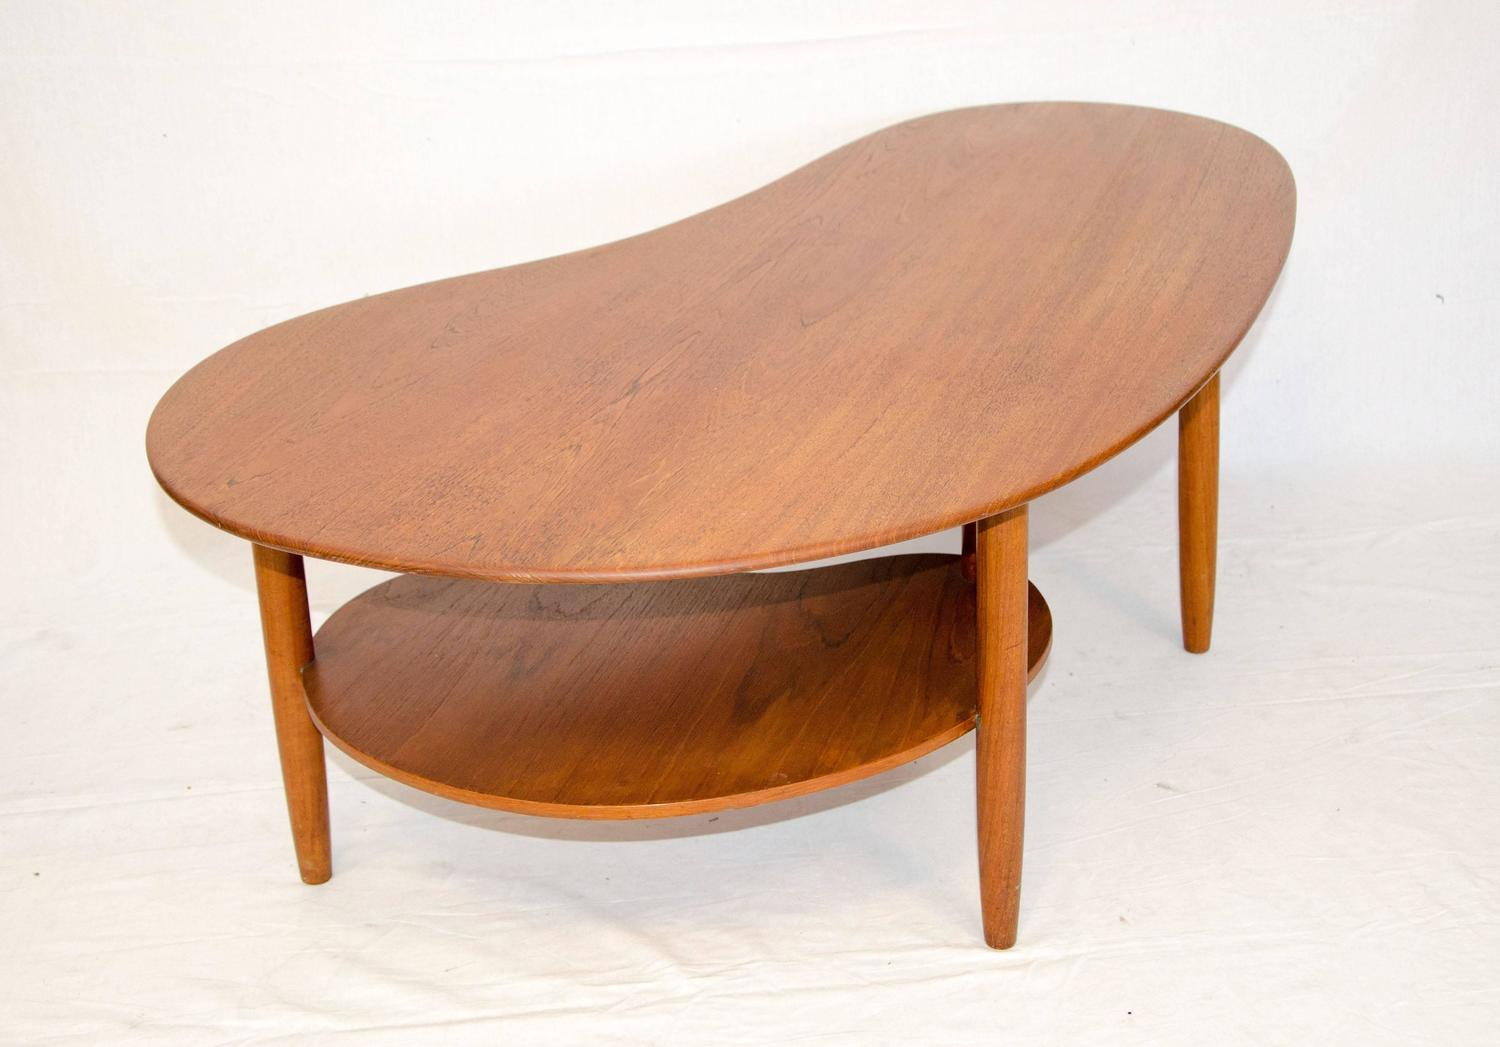 Danish Teak Kidney Shaped Coffee Or Cocktail Table At 1stdibs